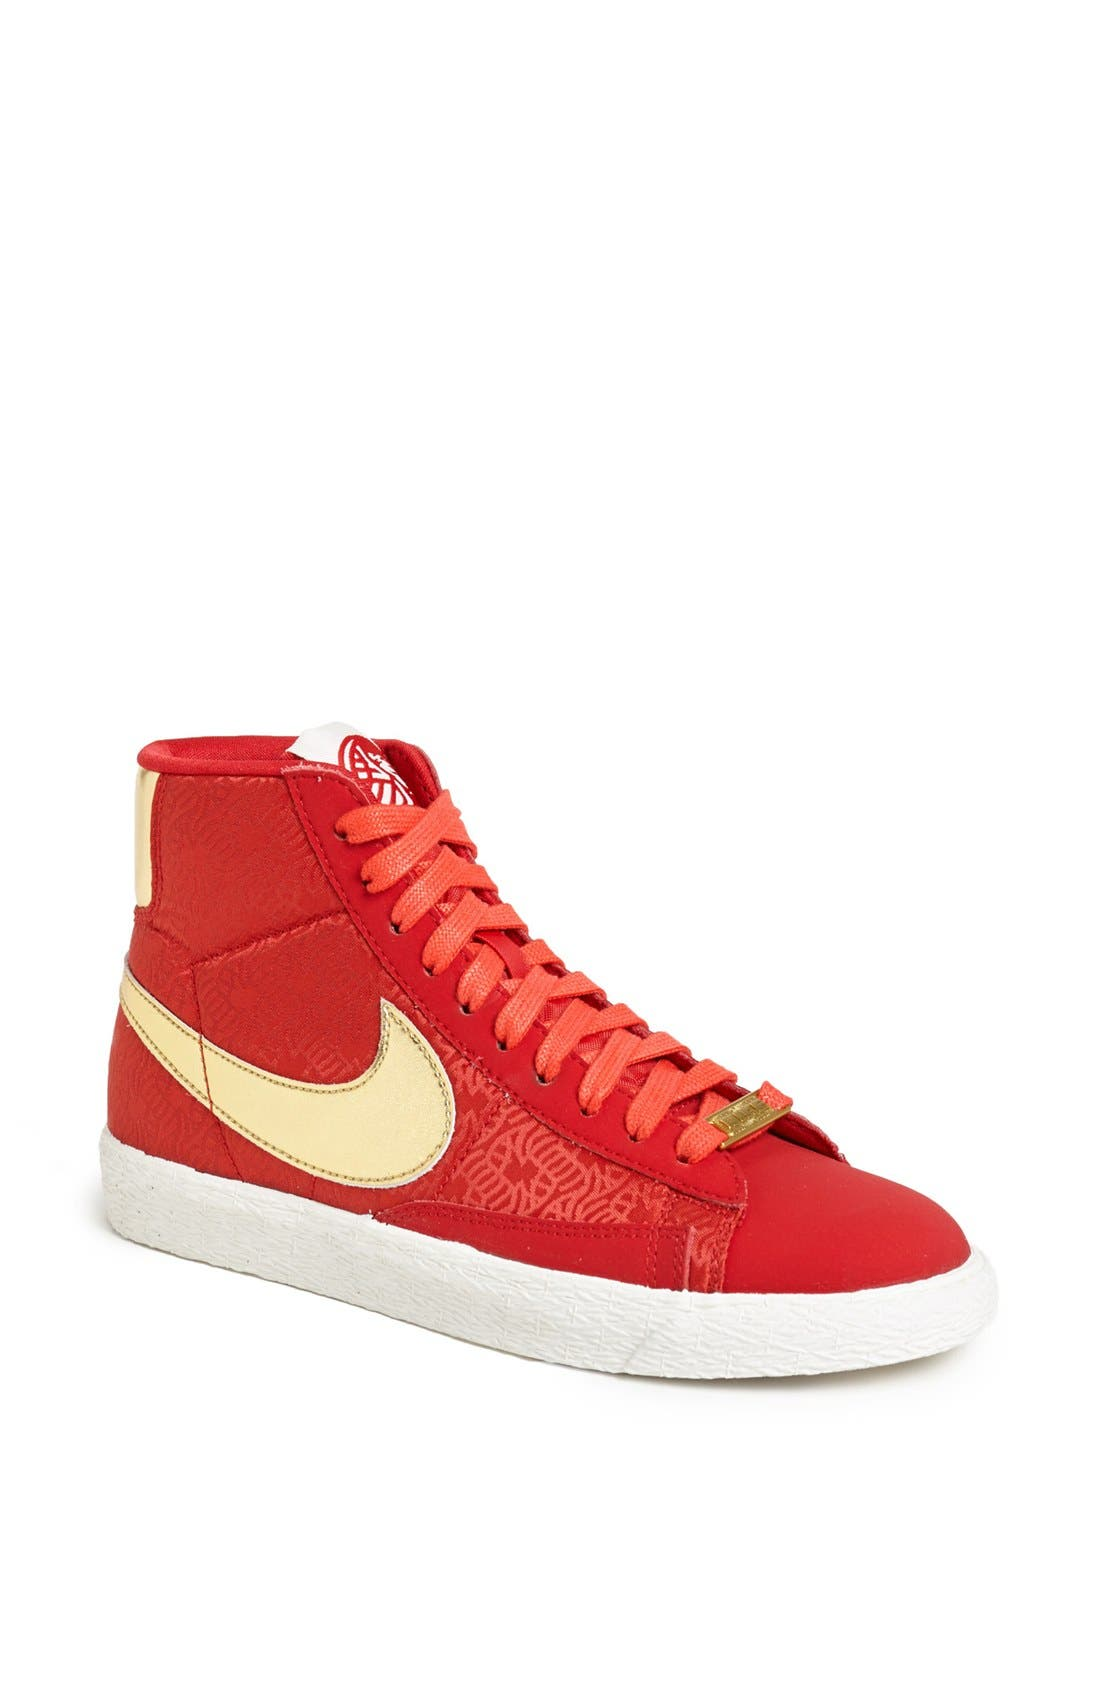 Main Image - Nike 'Blazer Mid - Year of the Horse' Sneaker (Women)